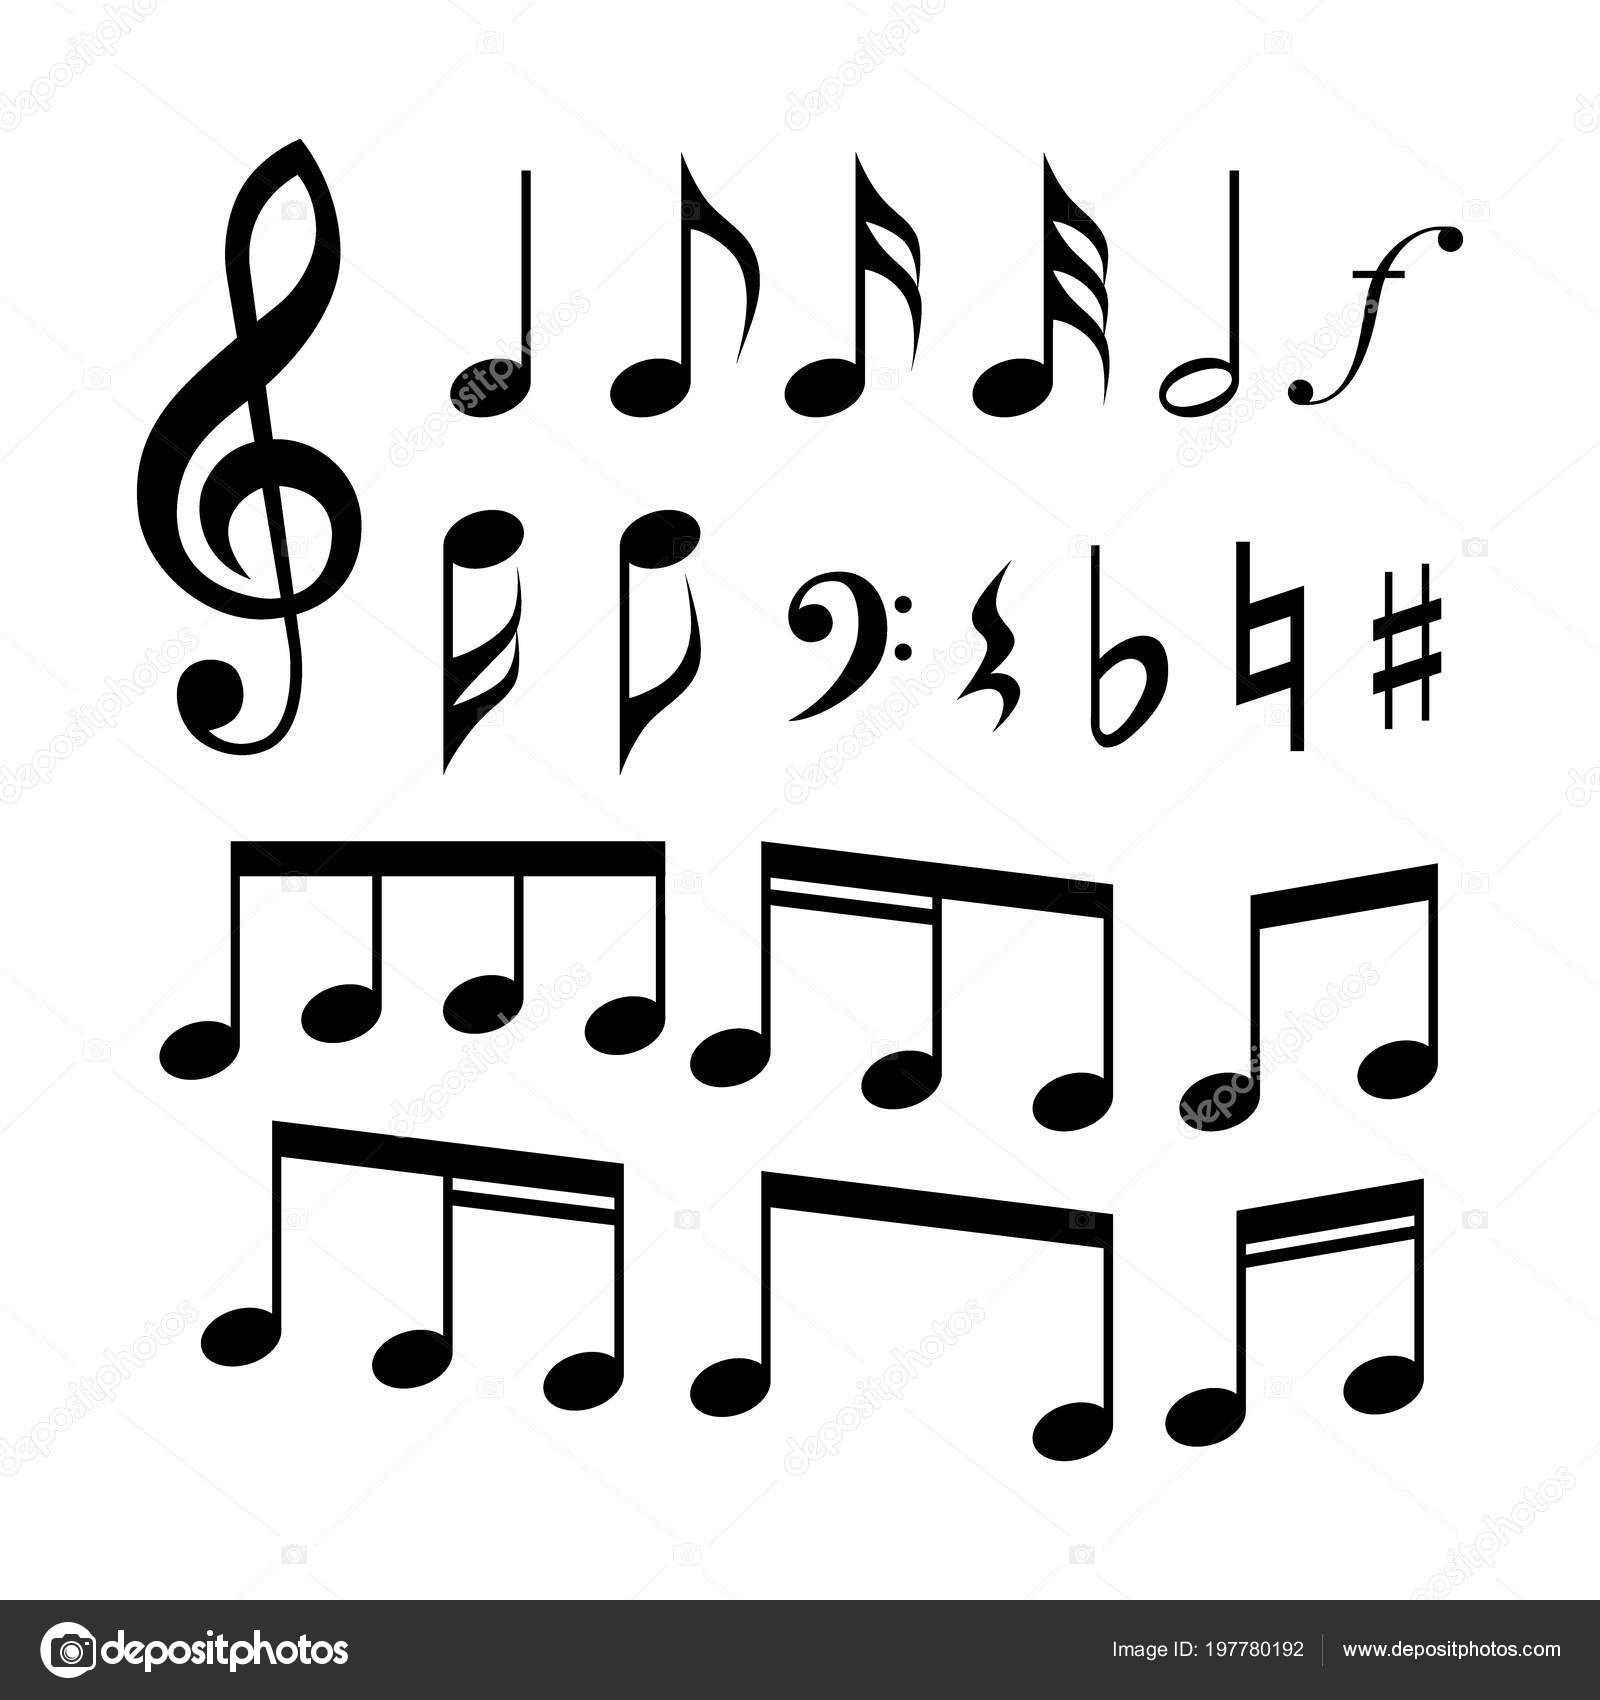 Clef Clef Music Notes Symbols Icon Set Music Signs Stock Vector